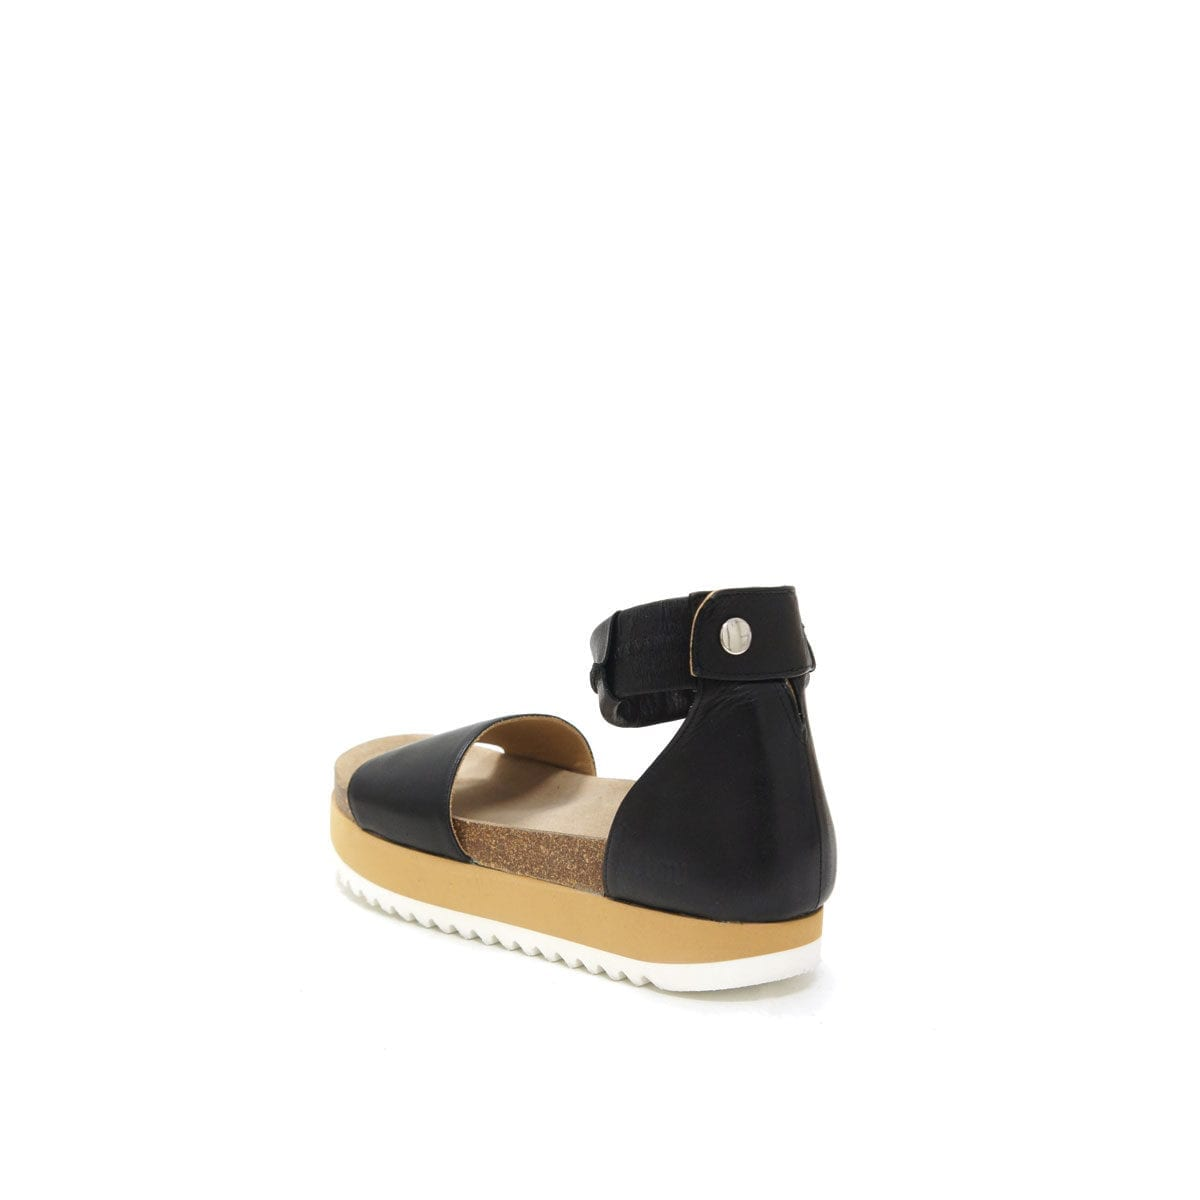 LUMI Birgitta Cork Sandal, in black, make the perfect summer shoe for every occasion. Just slip on and go!